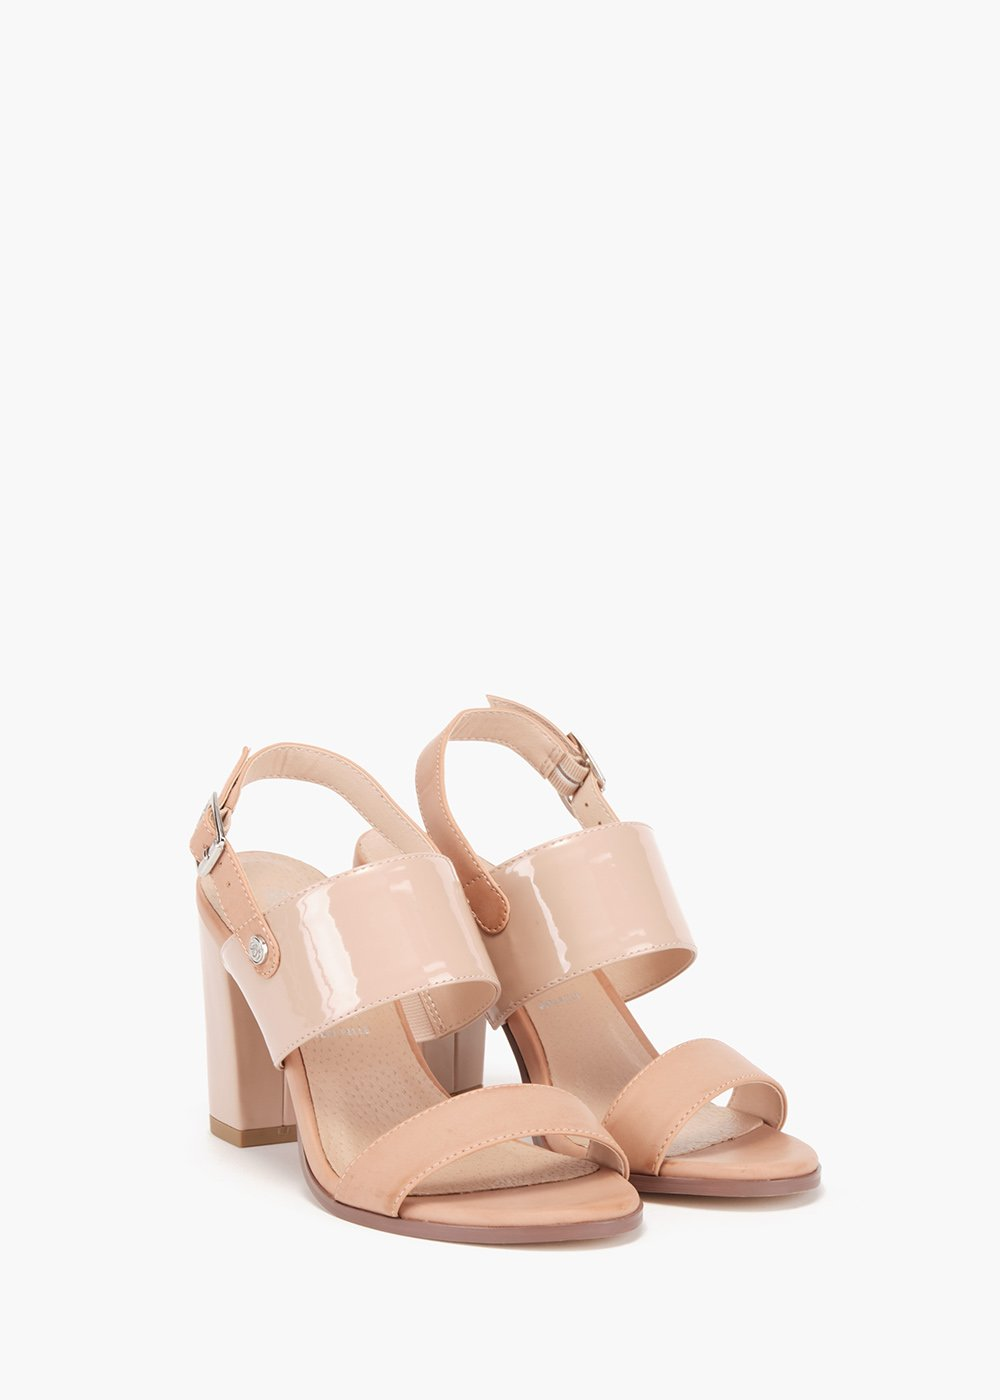 Shyla sandals with nude effect and double band in eco leather and patent leather